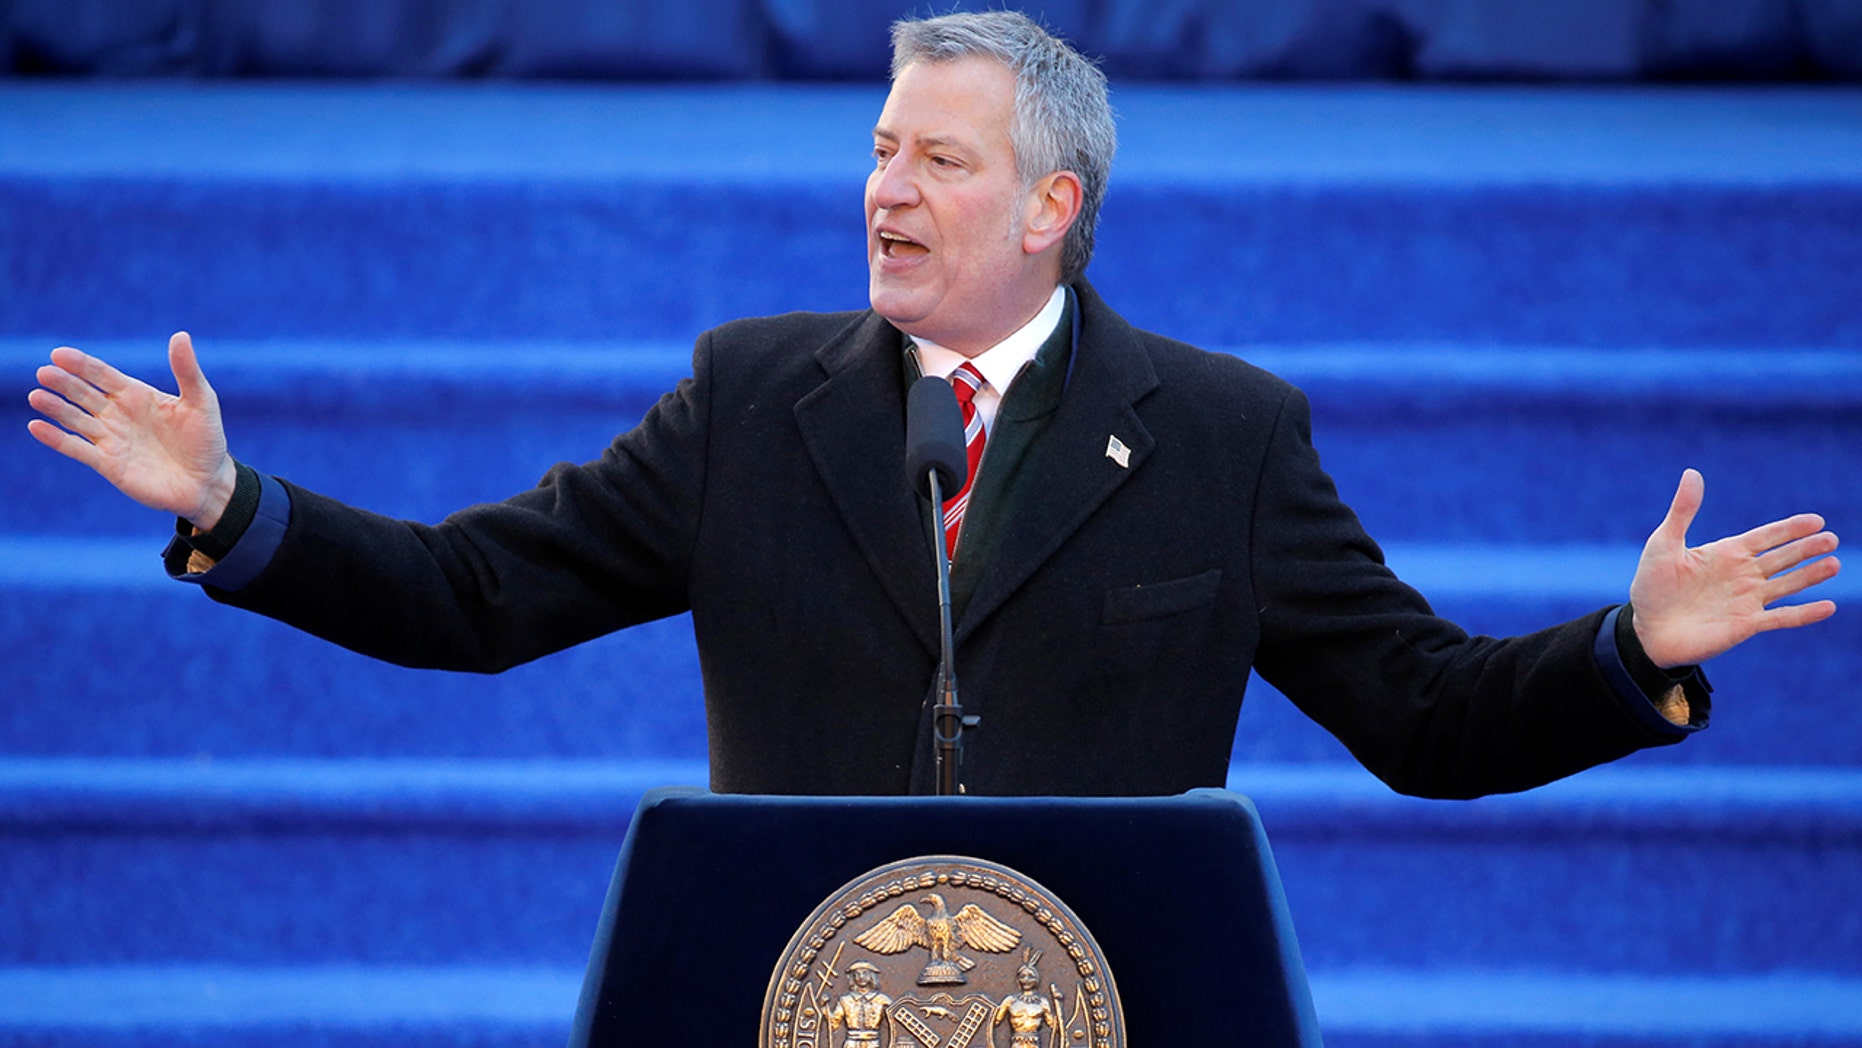 New York City Mayor Bill de Blasio delivering a speech.